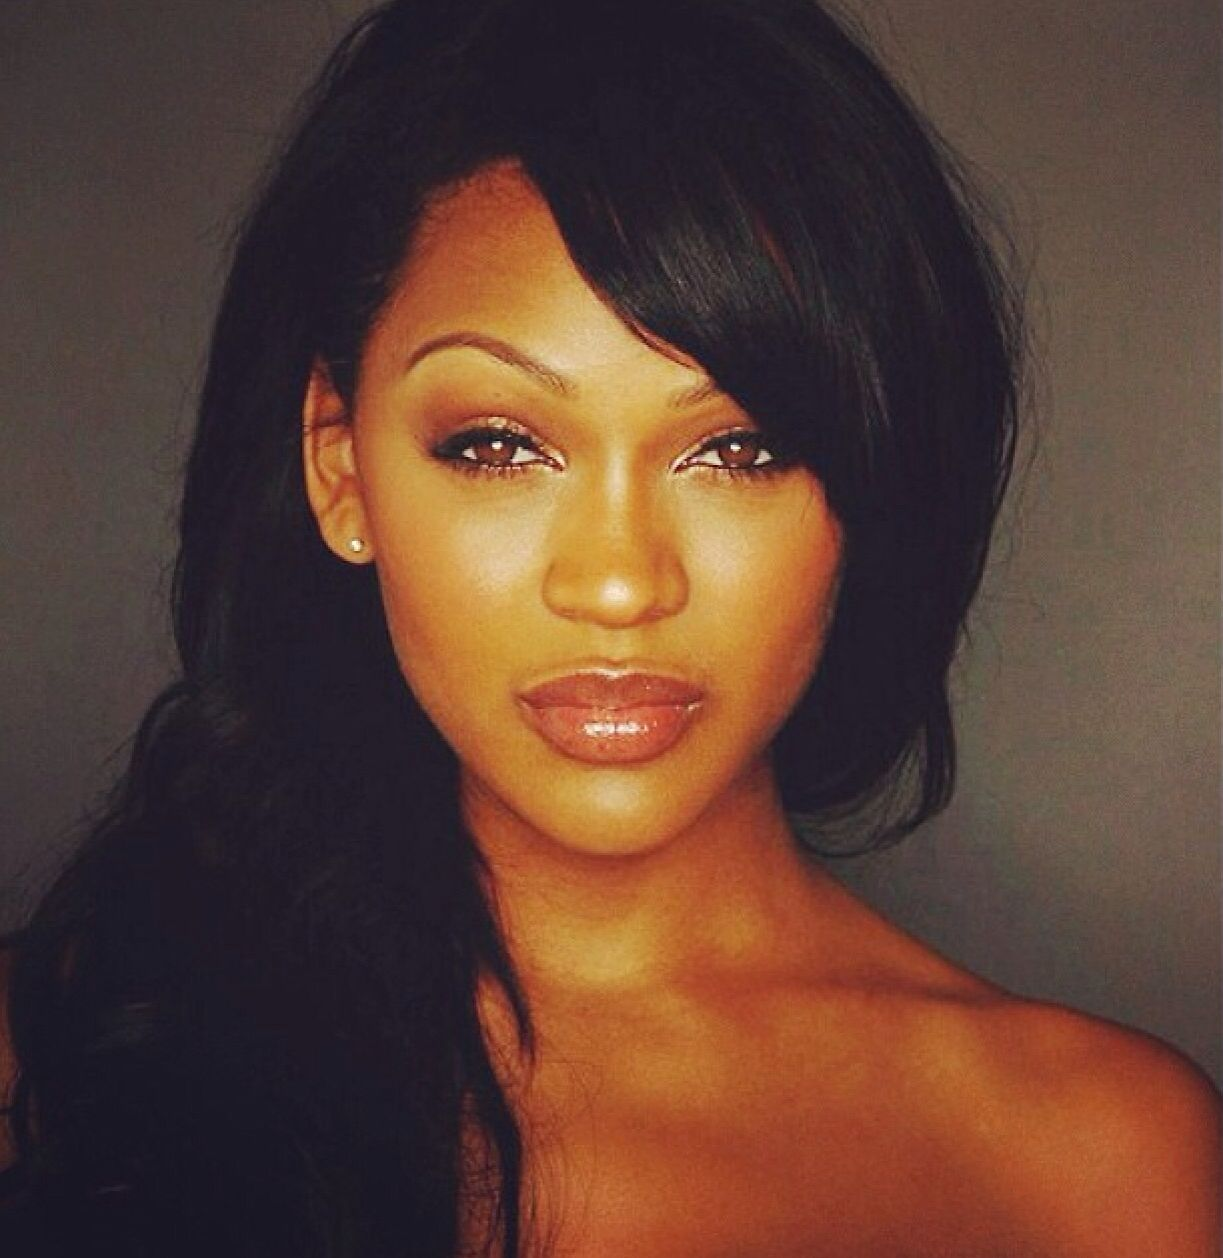 Pin by empress esh on meagan good her pinterest find this pin and more on meagan good her by empressesh baditri Images